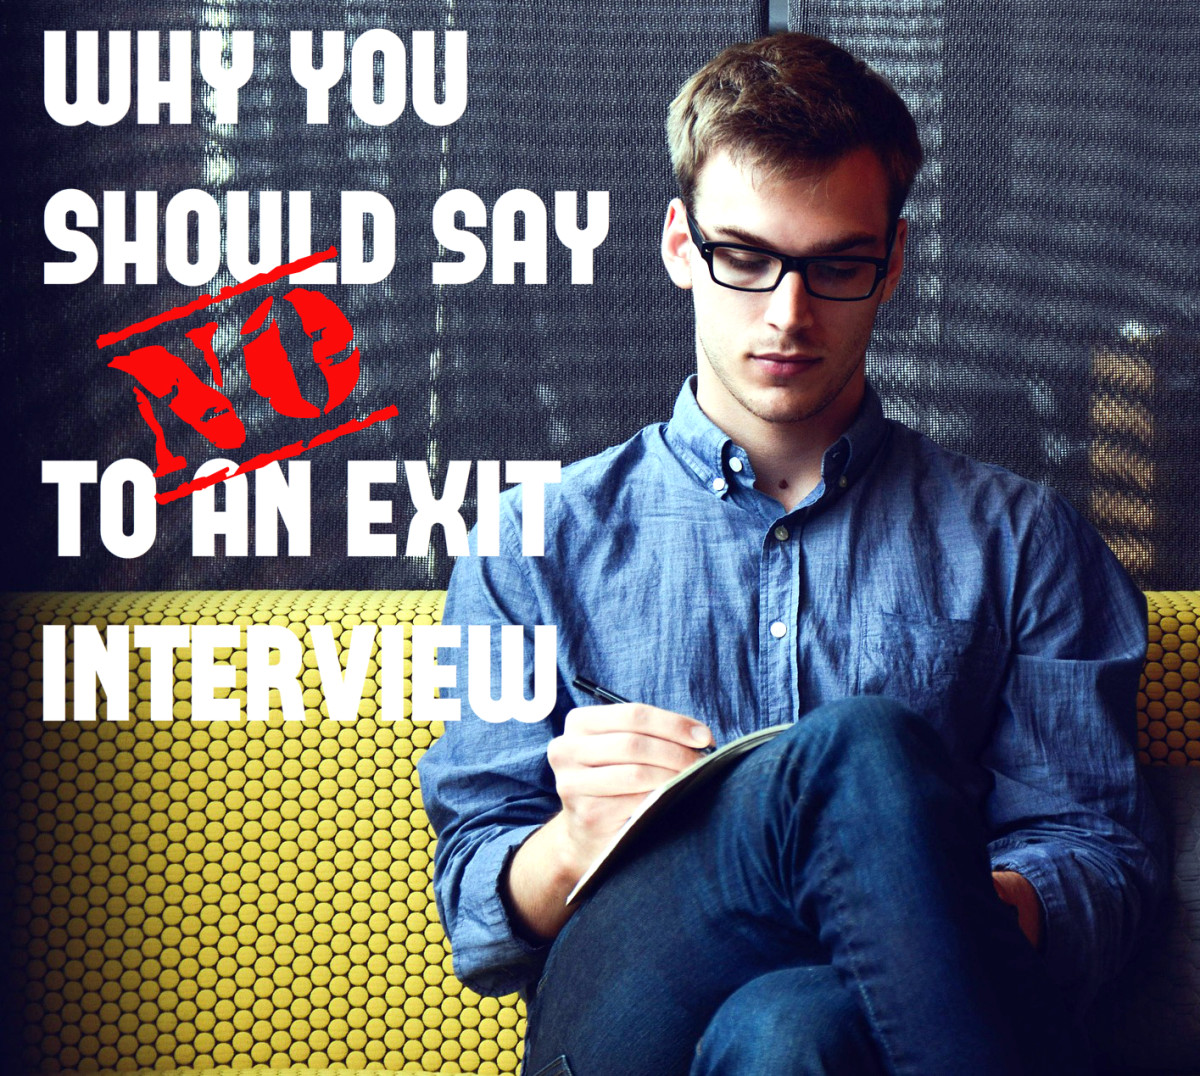 Here's Why You Should Say No to an Exit Interview